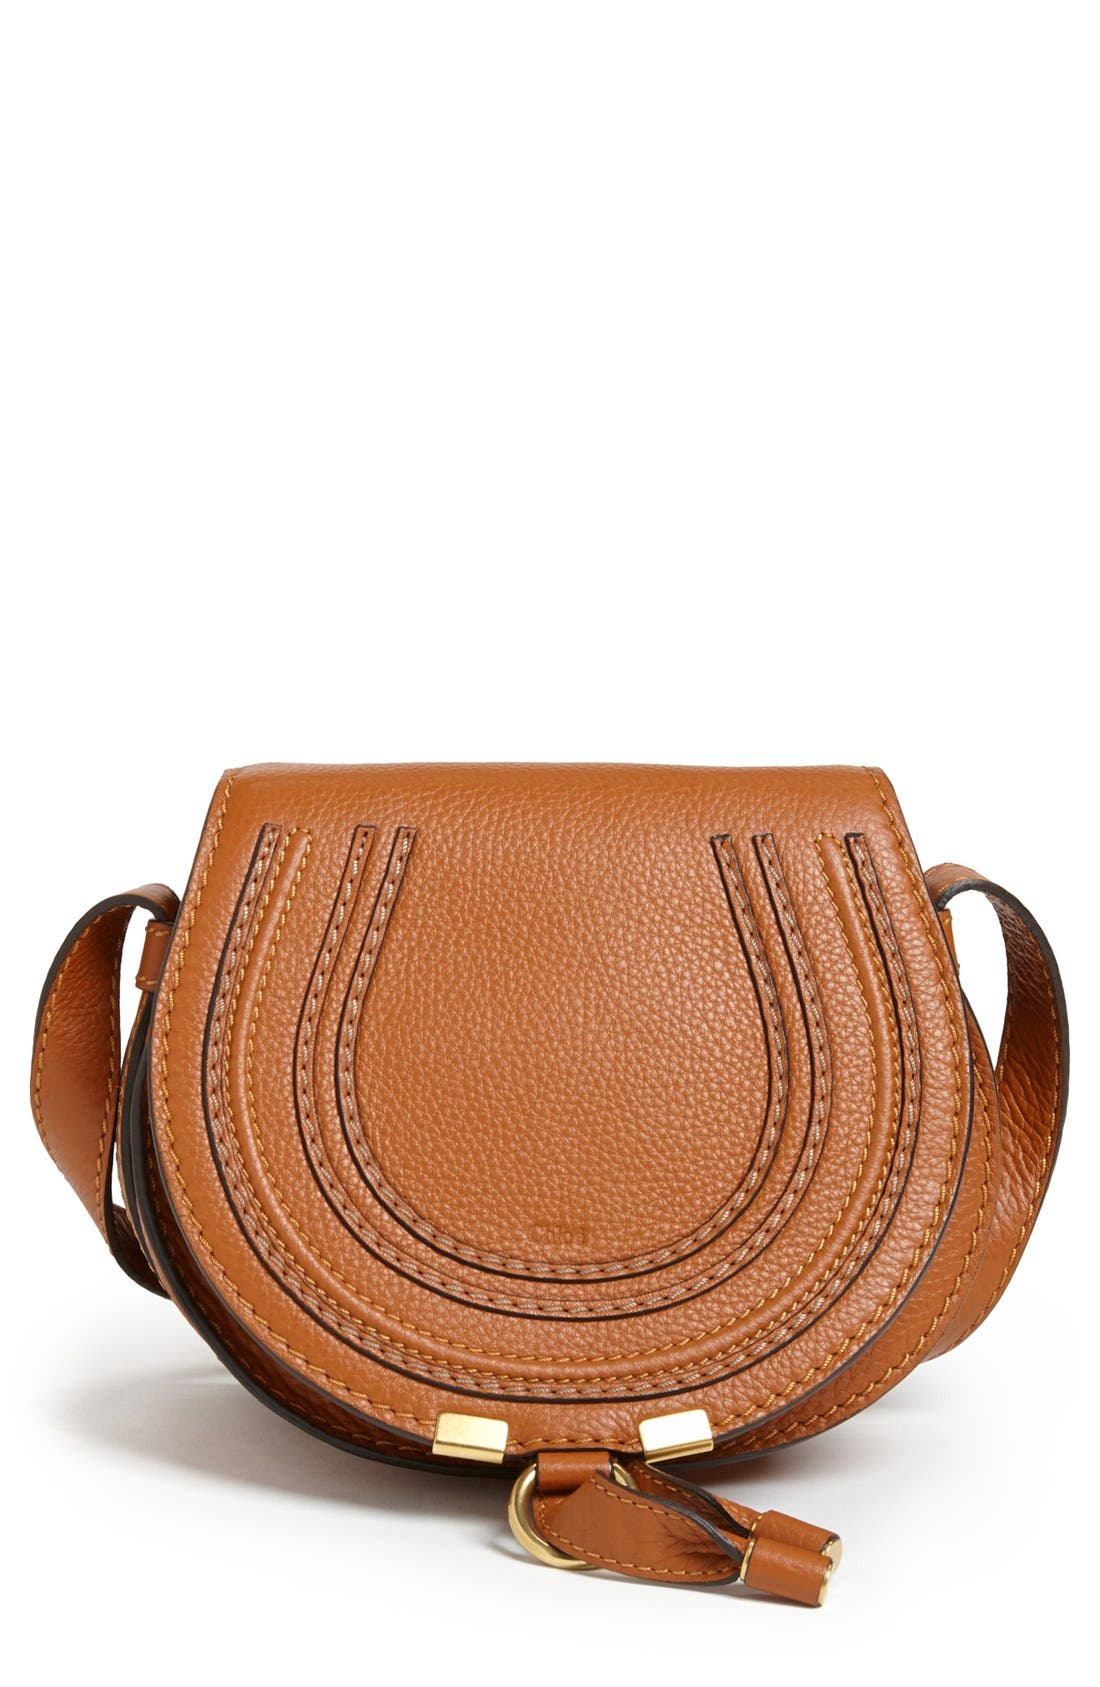 Alternate Image 1 Selected - Chloé 'Mini Marcie' Leather Crossbody Bag